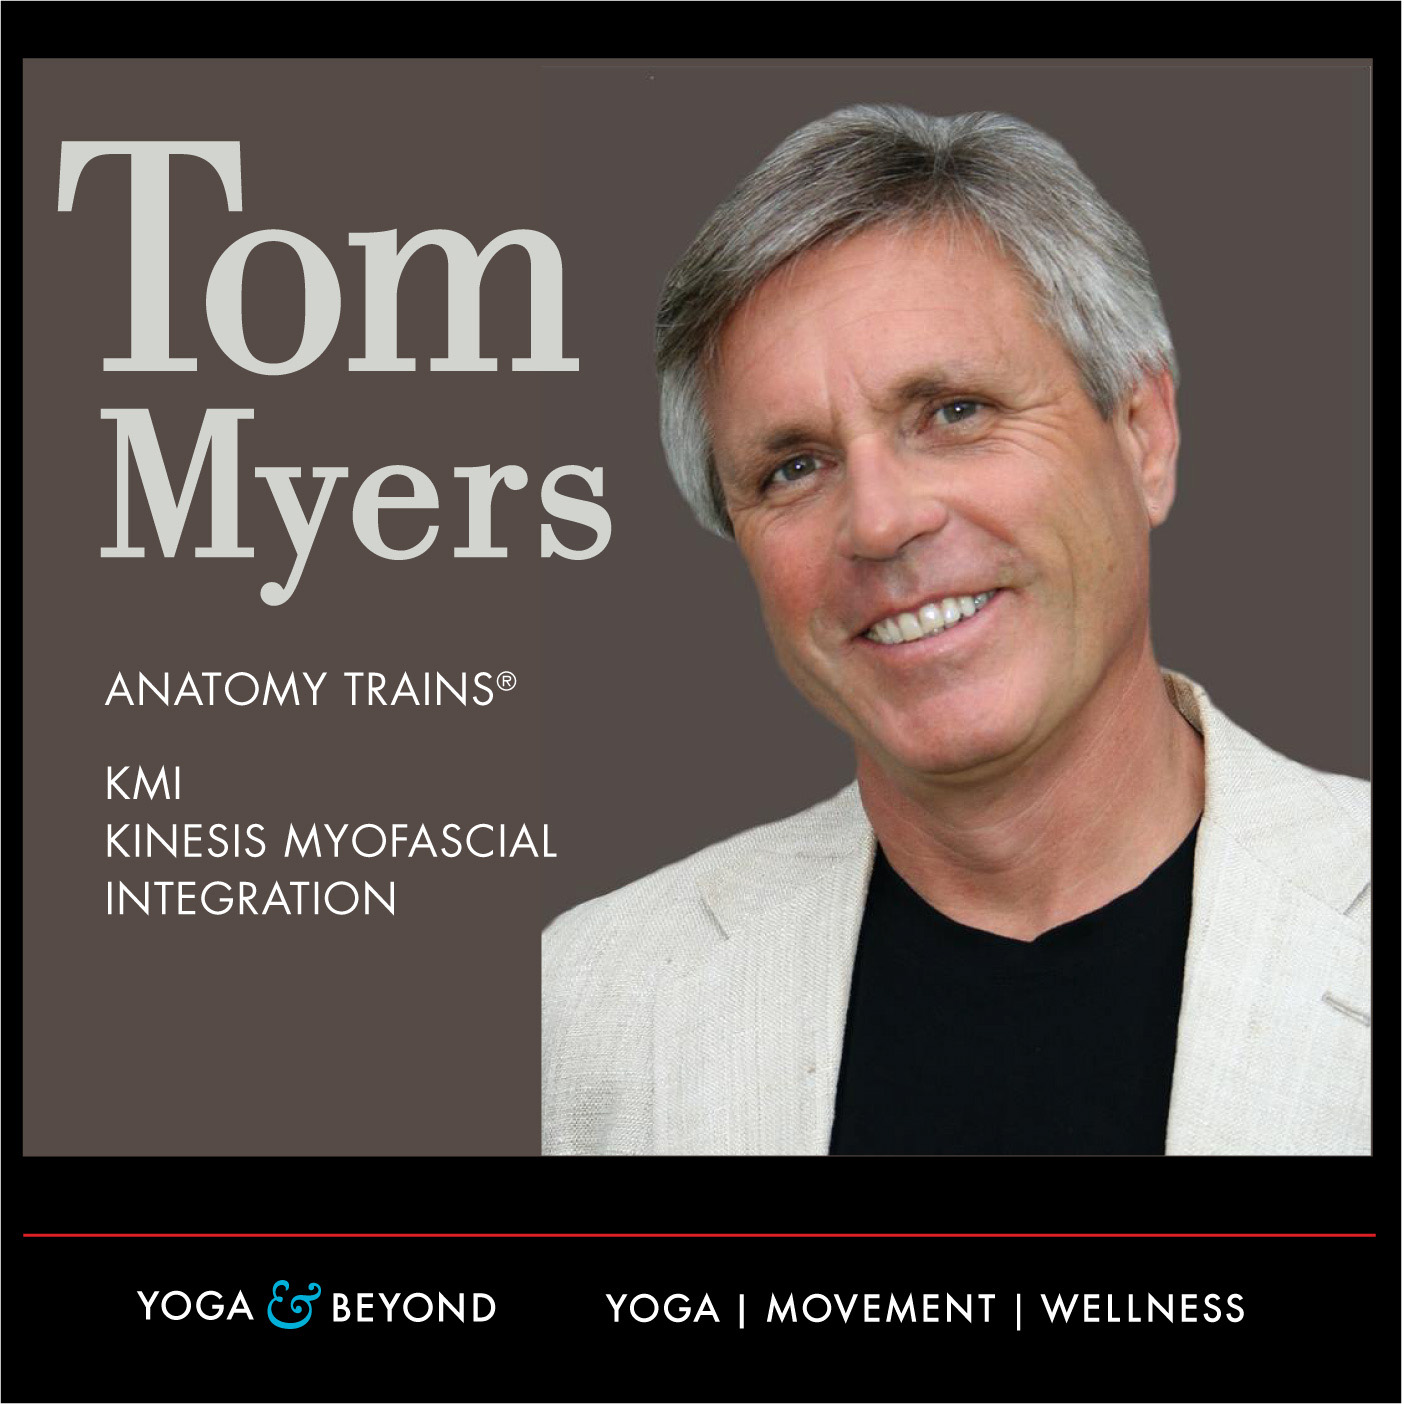 Yoga & Beyond #18 Tom Myers–Anatomy Trains